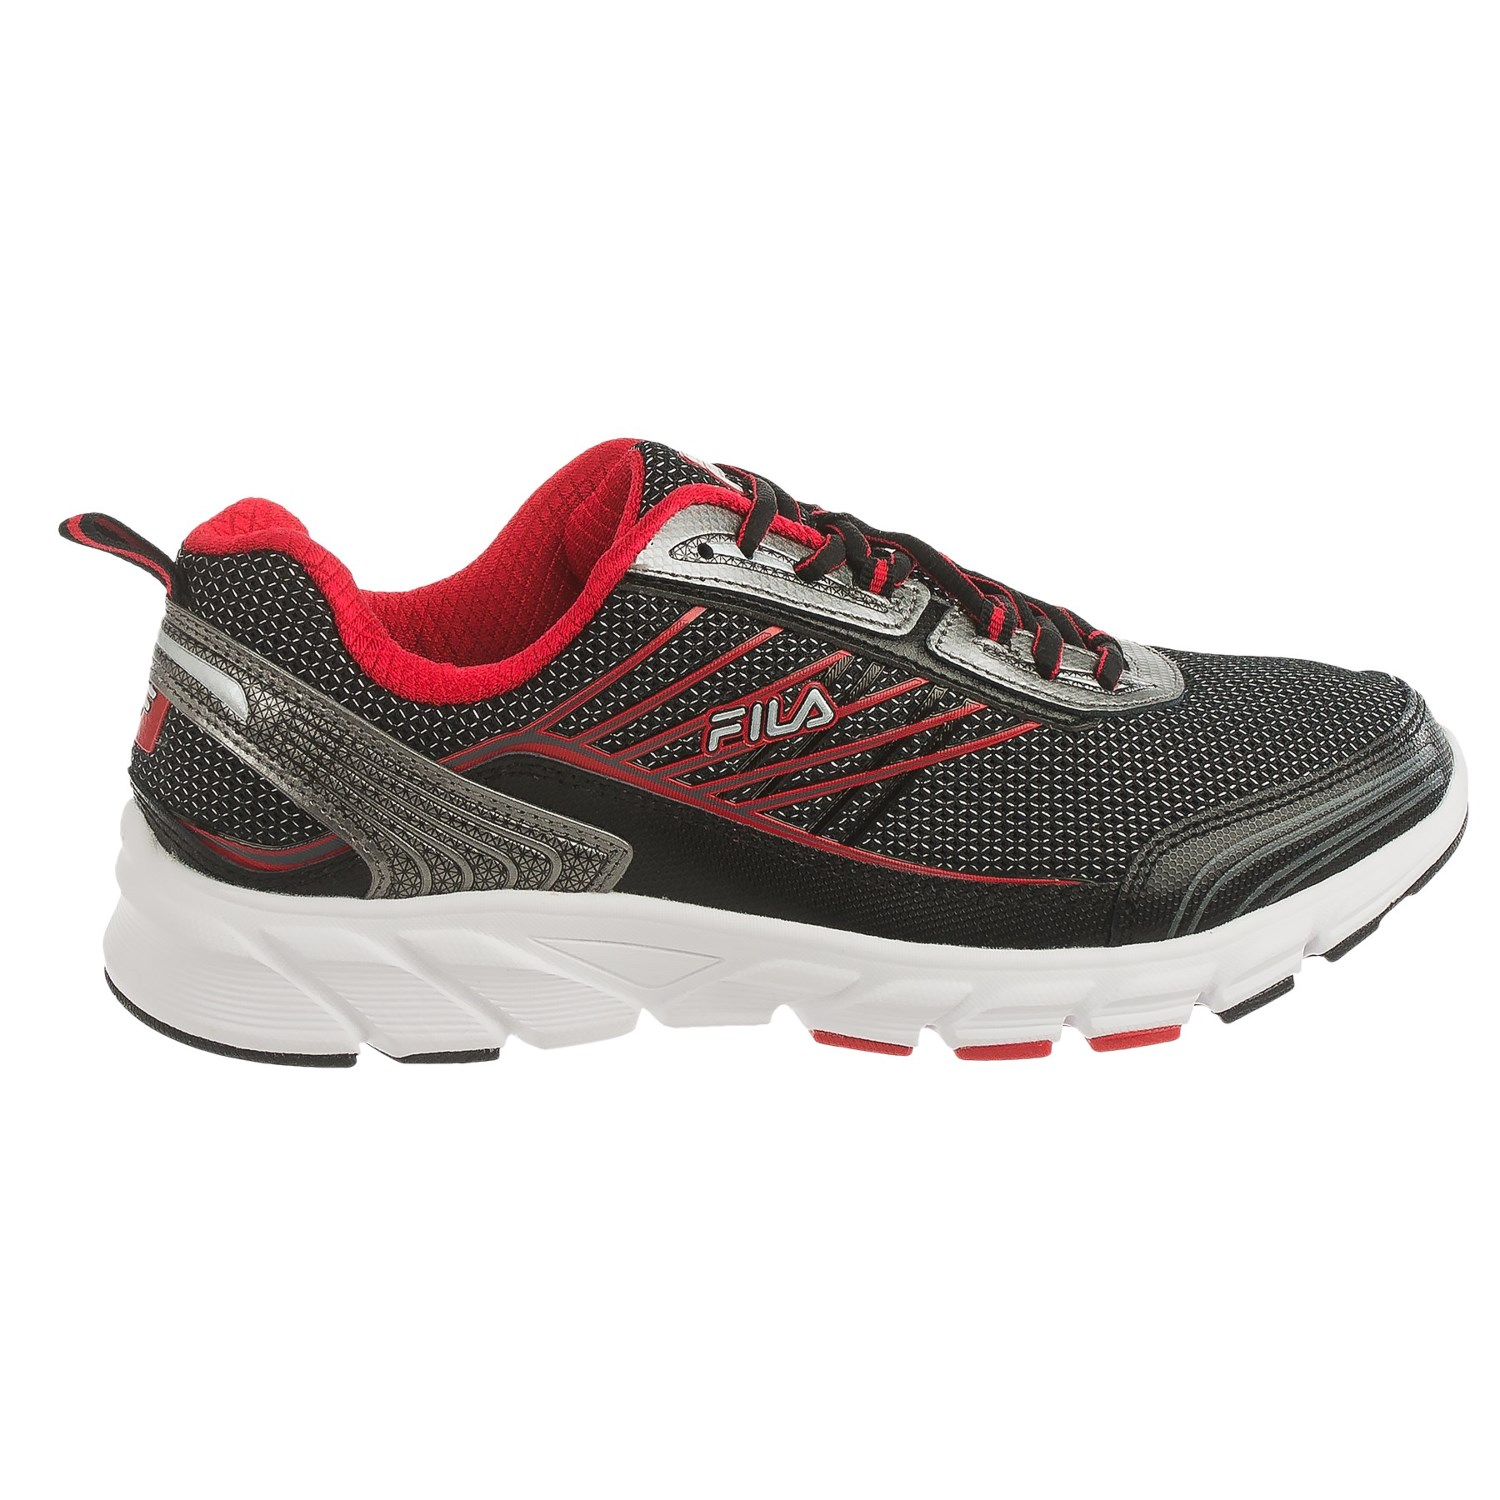 Fila Forward 3 Running Shoes For Men Save 57